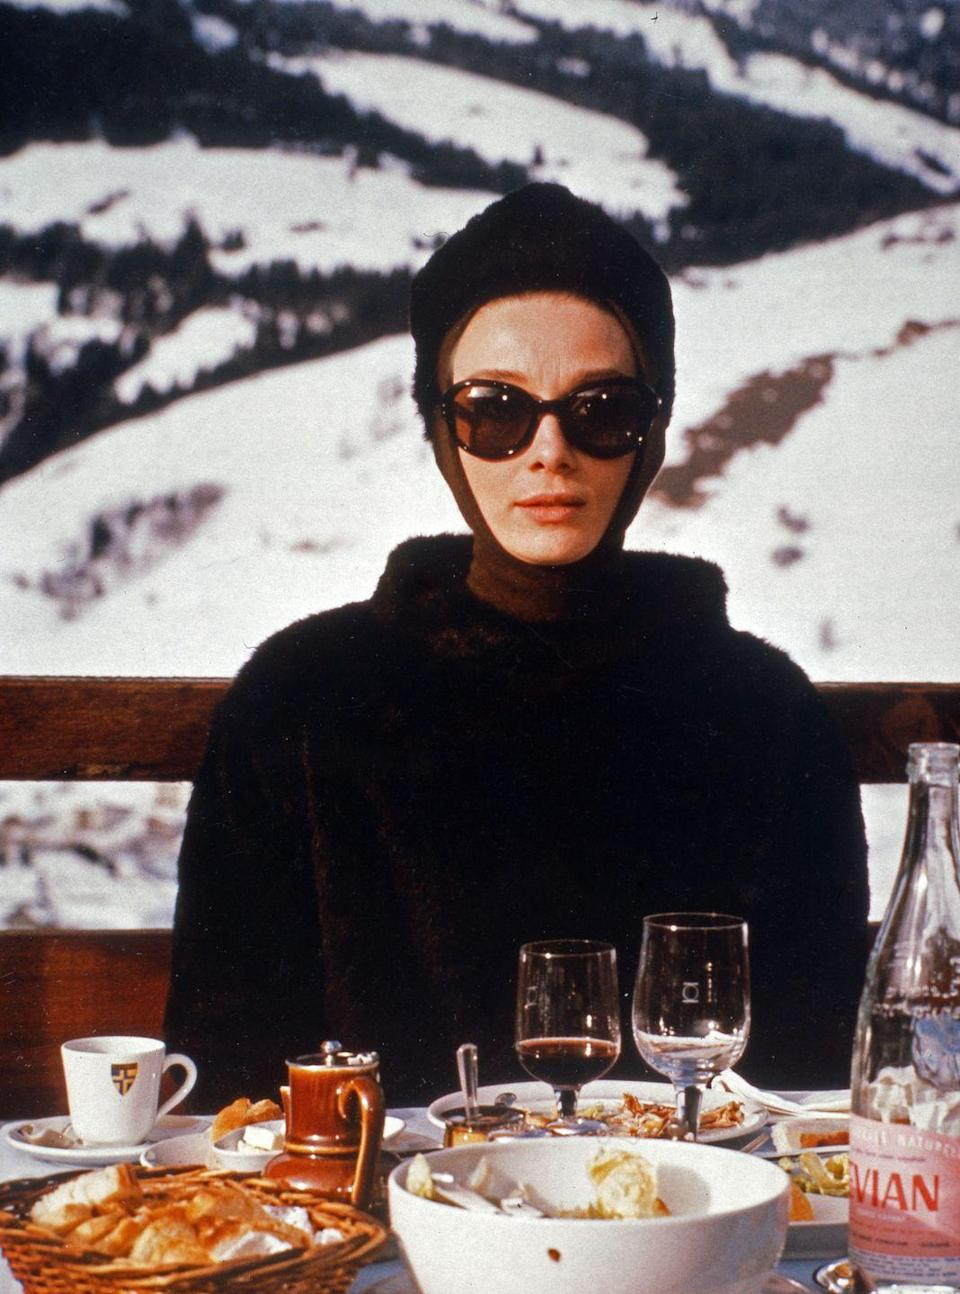 <p>There is nothing more sophisticated when it comes to apres ski than a look inspired by the slope side styles of Audrey Hepburn in <em>Charade. </em></p>